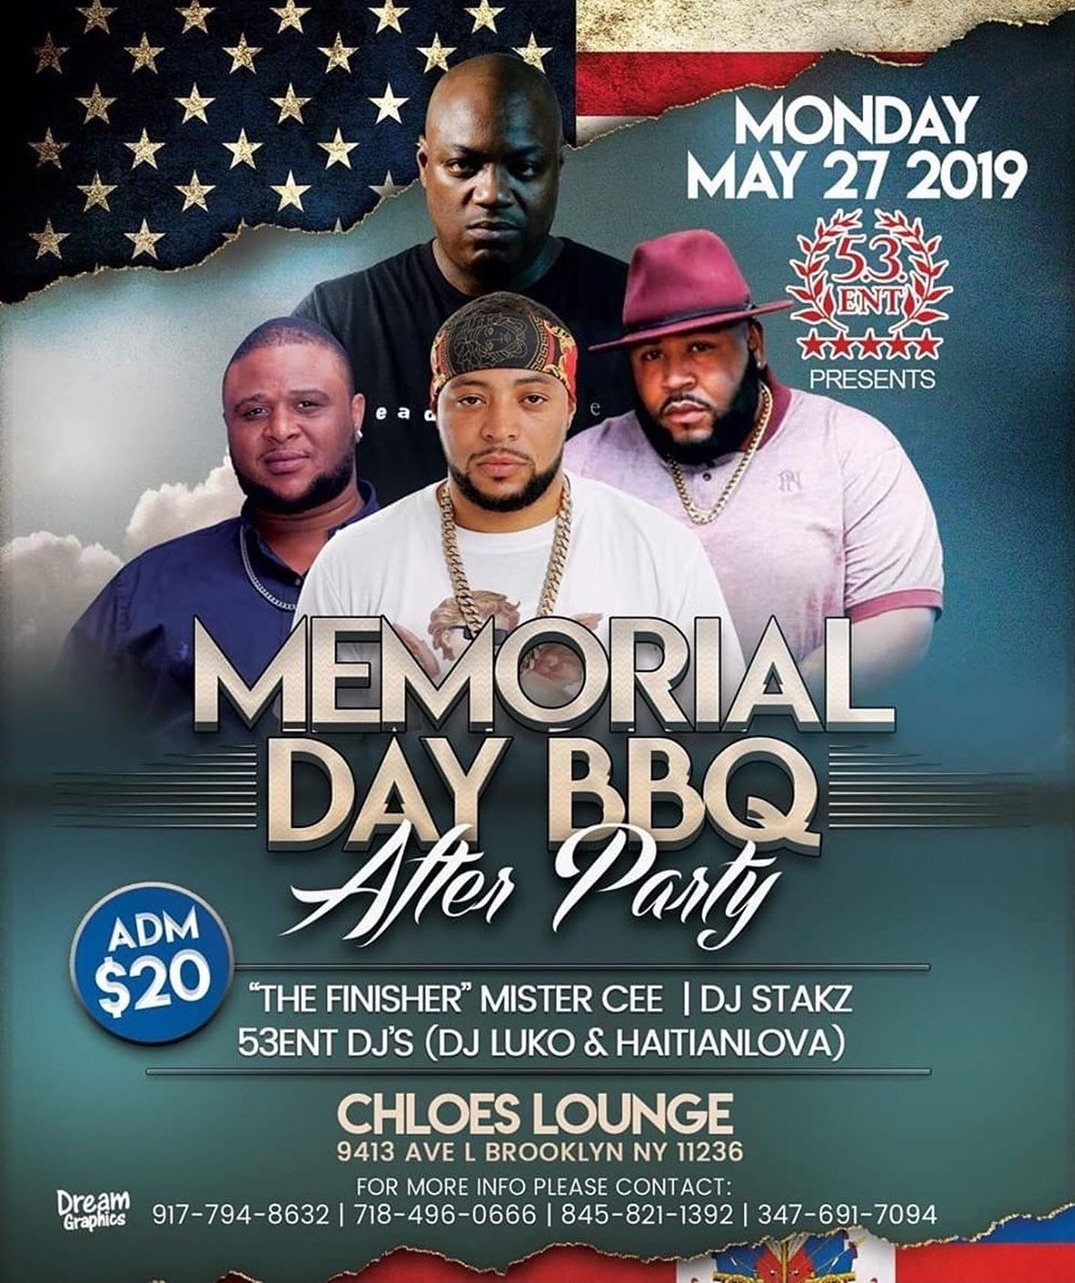 Memorial Day BBQ After Party - May 27.jpg